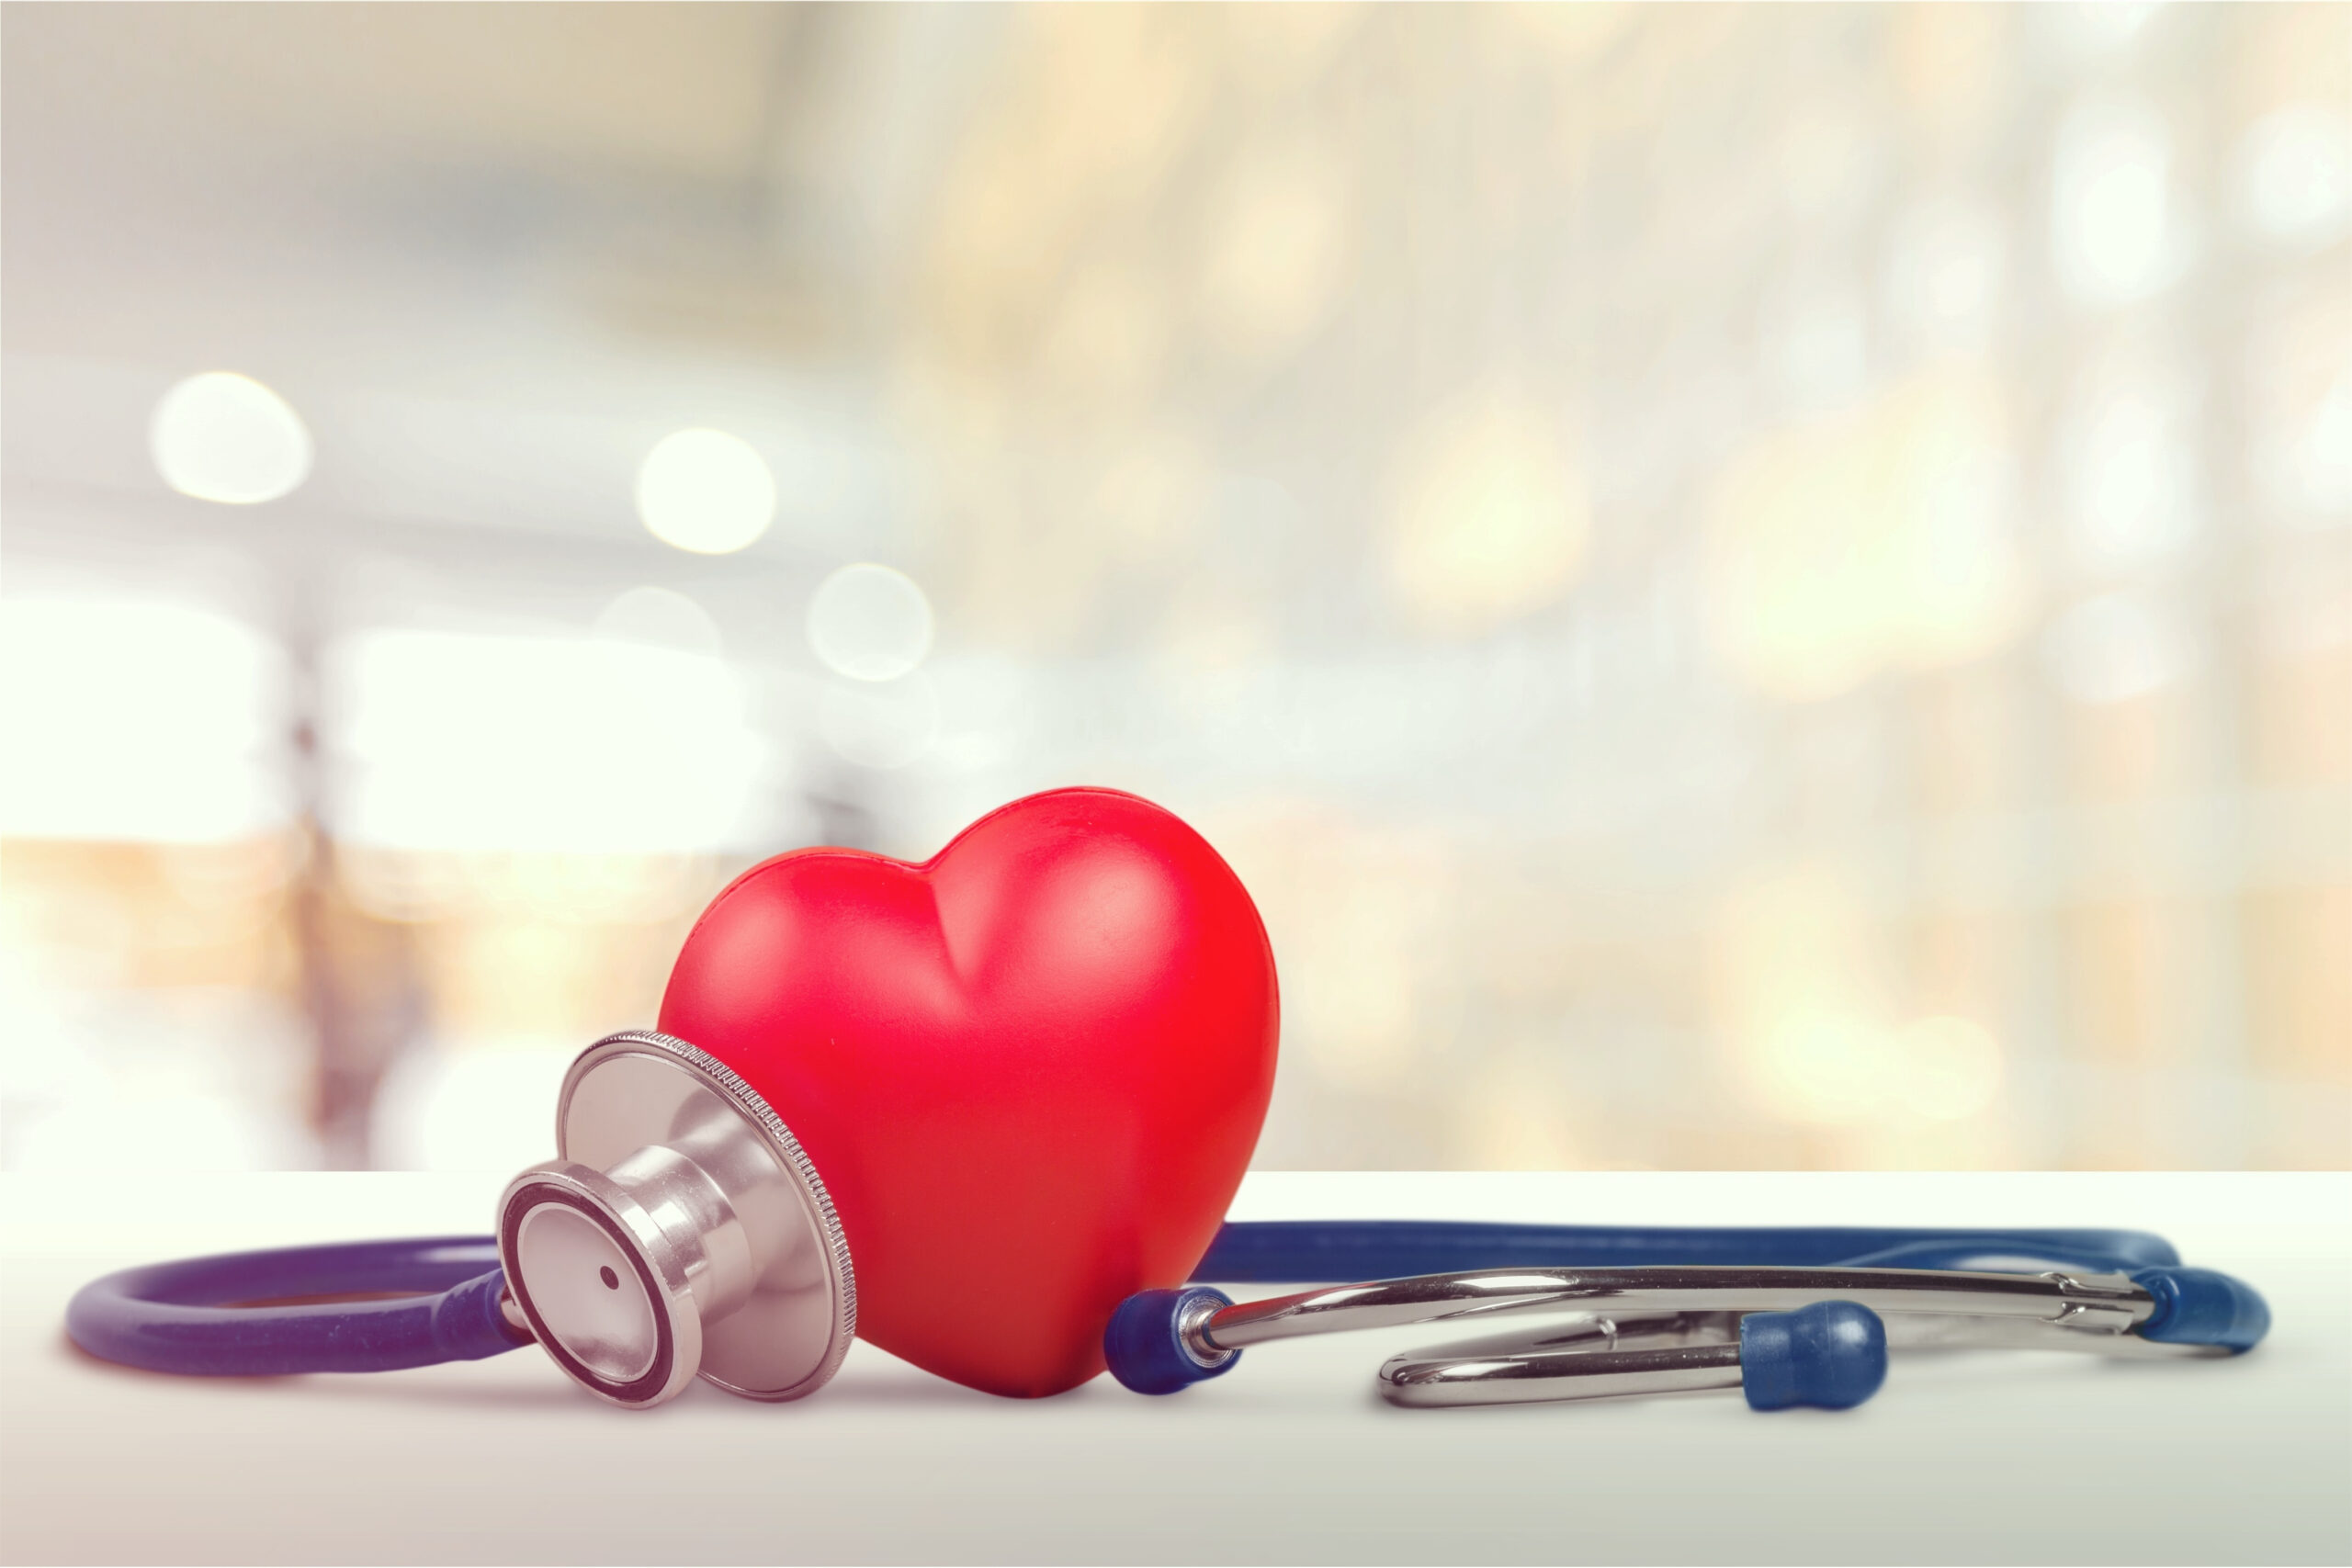 Why People With Heart Ailments Should Be Concerned In The Pandemic